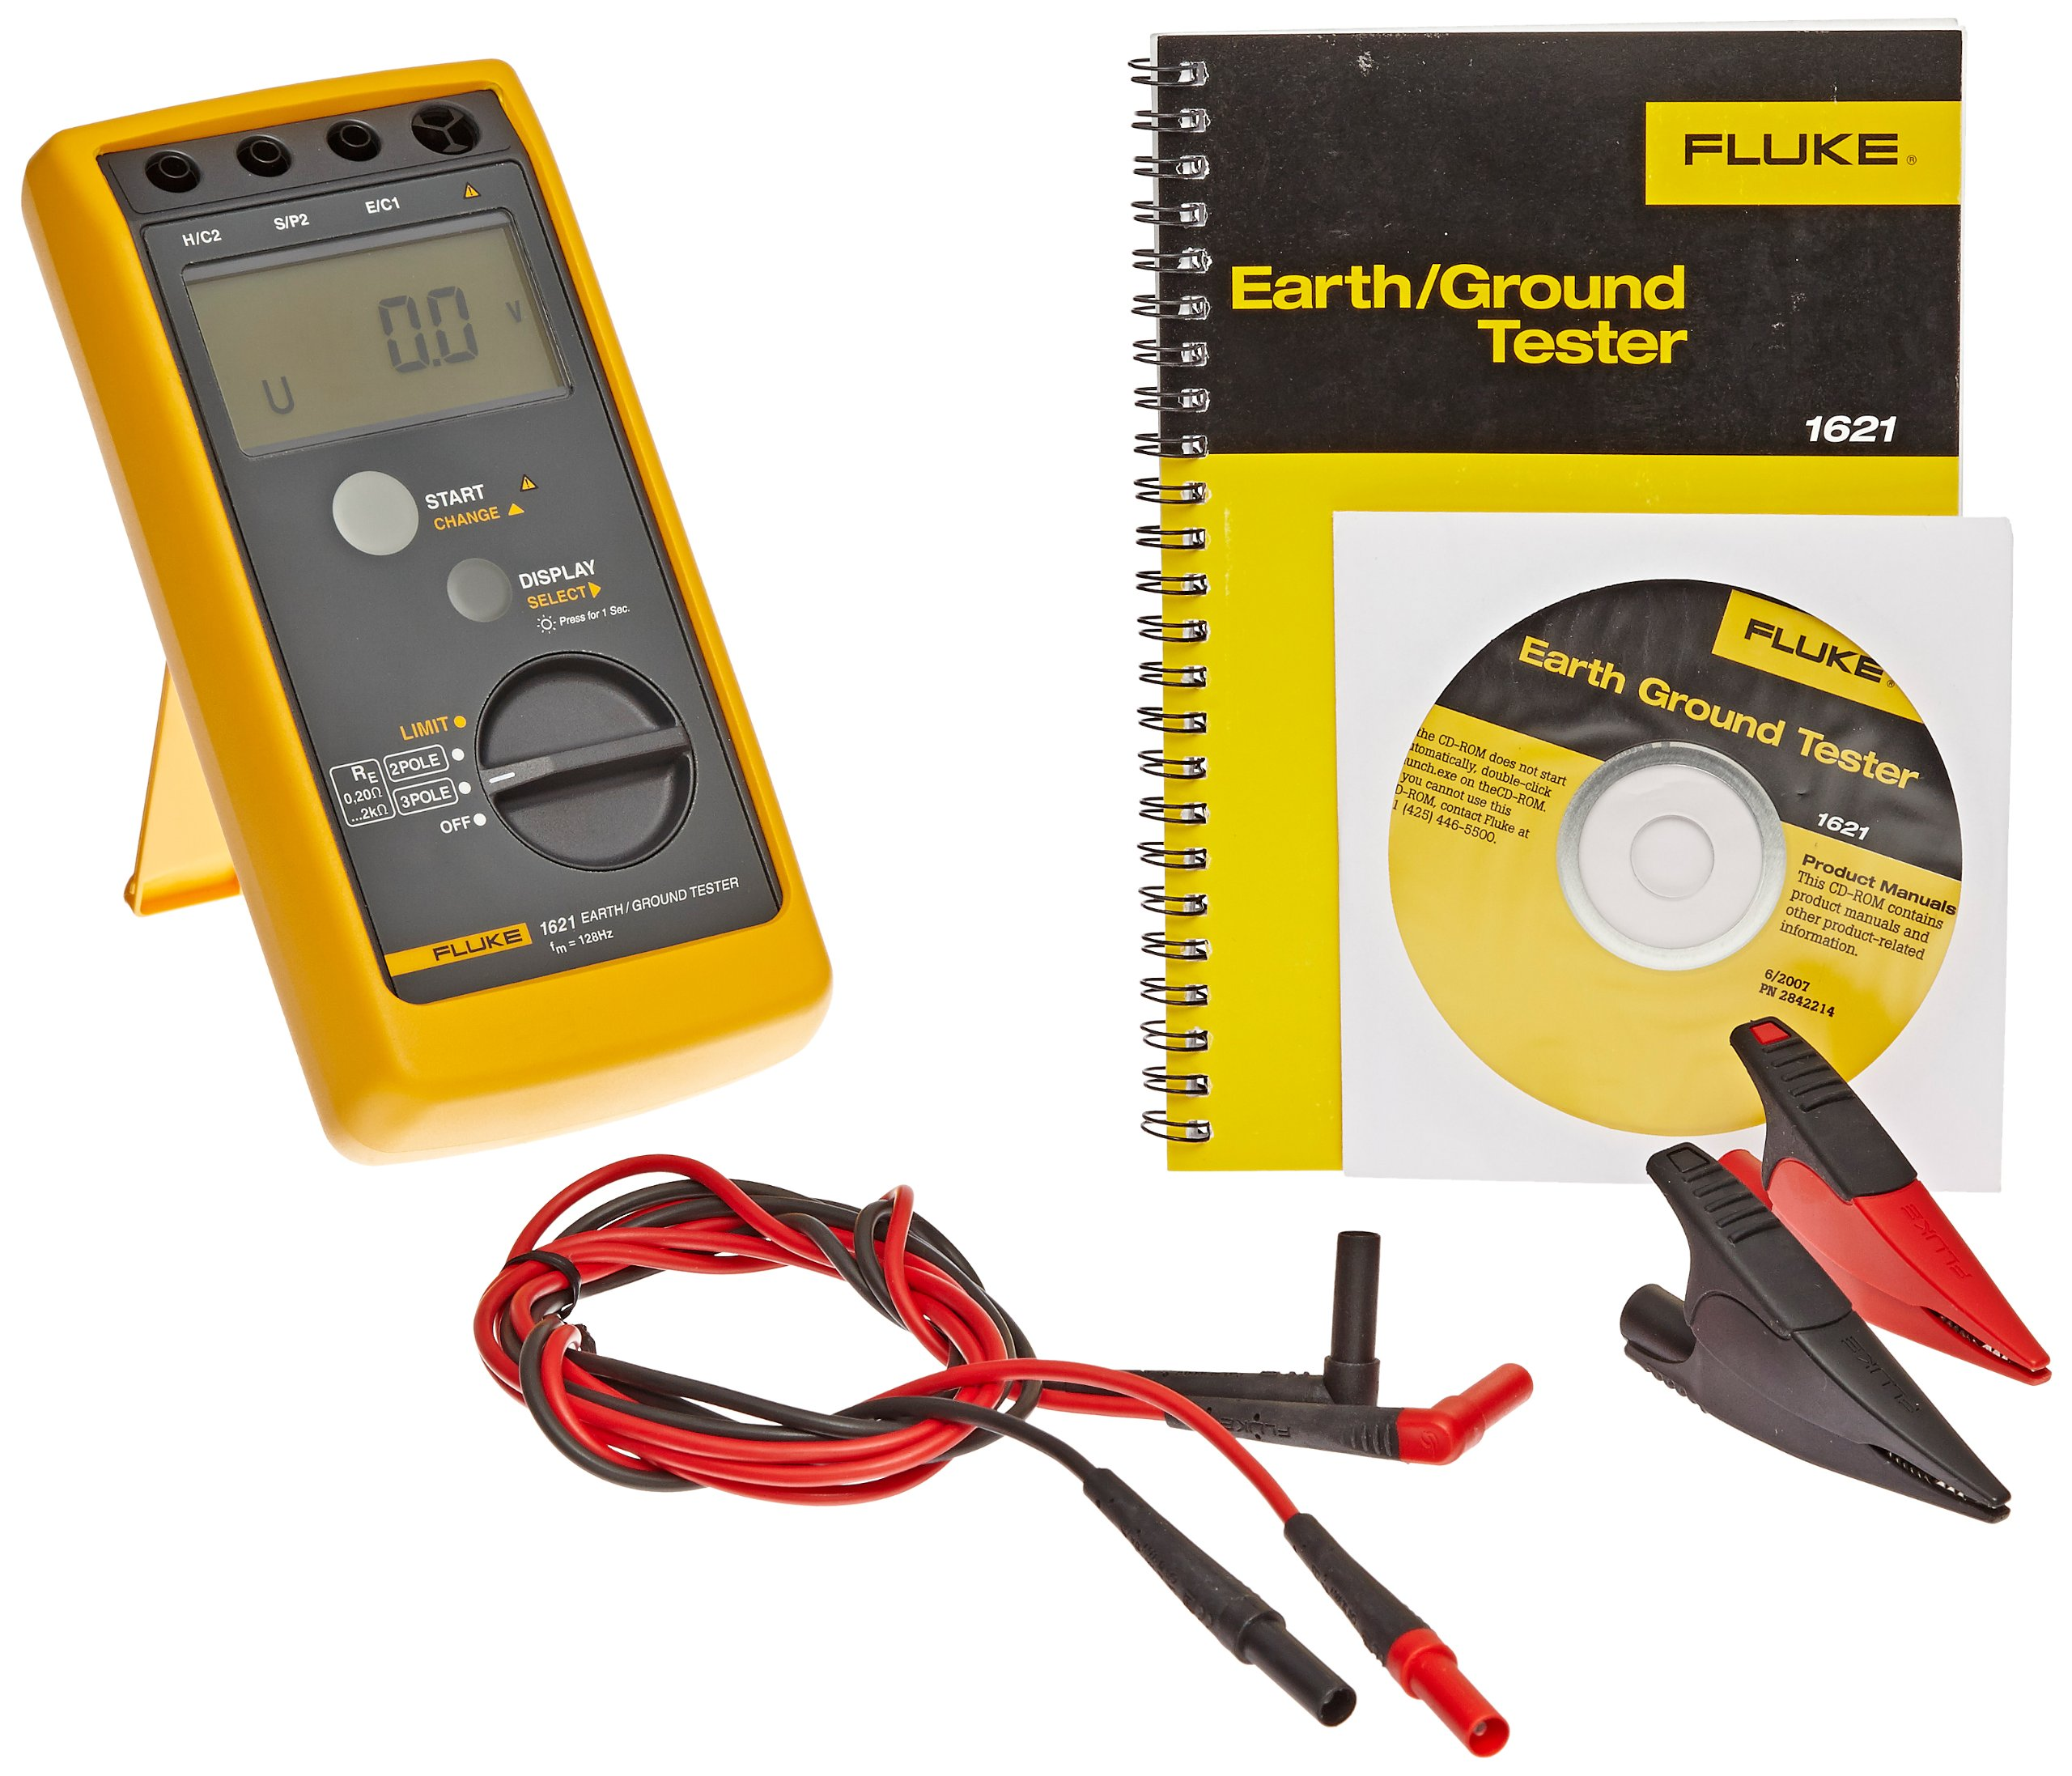 Fluke 1621 Earth Ground Tester, LCD Display, 3.7kV Voltage